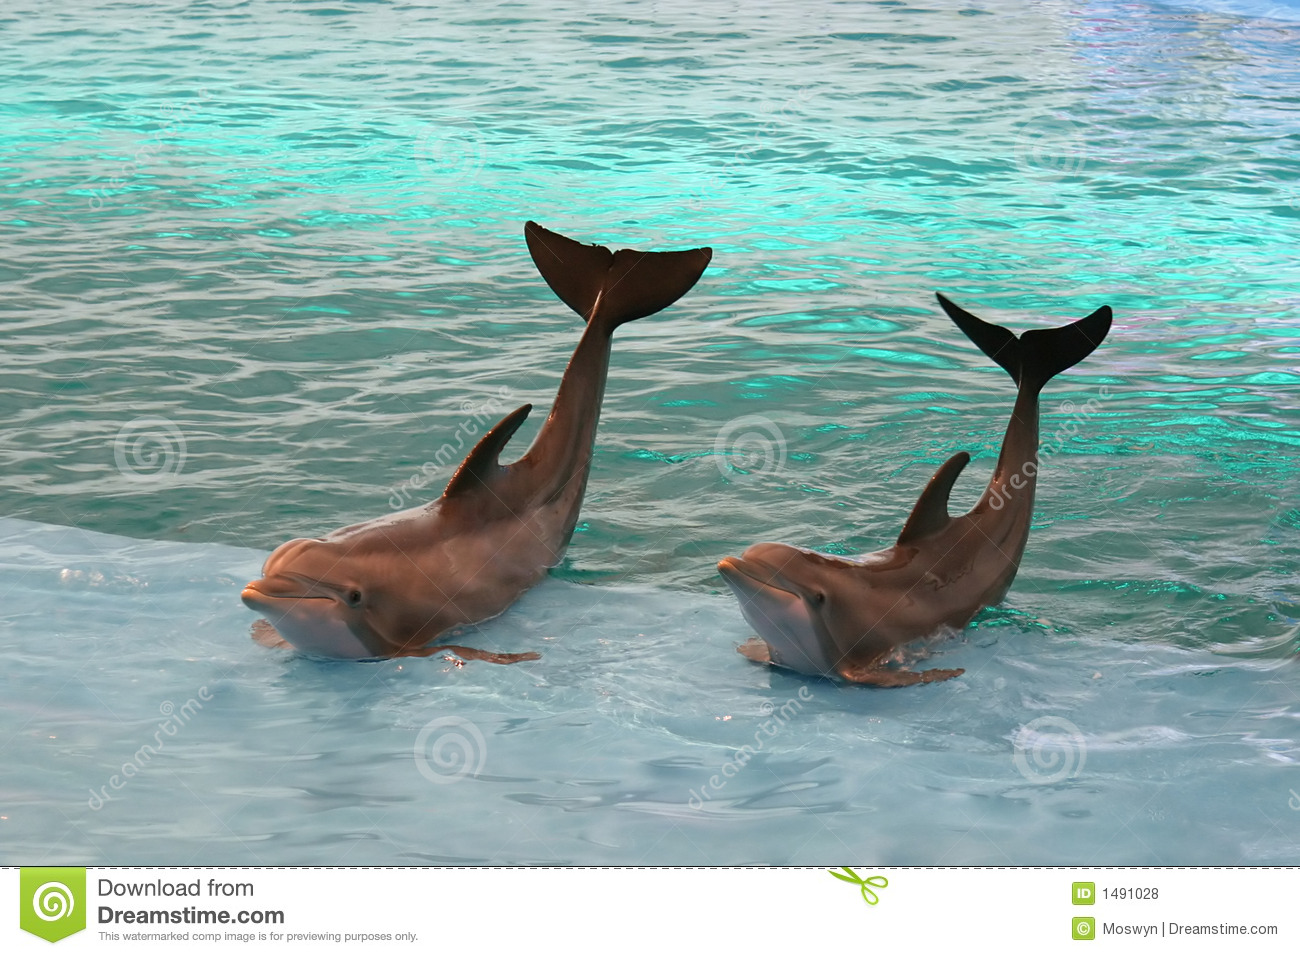 Dolphins Waving Royalty Free Stock Photos Image 1491028